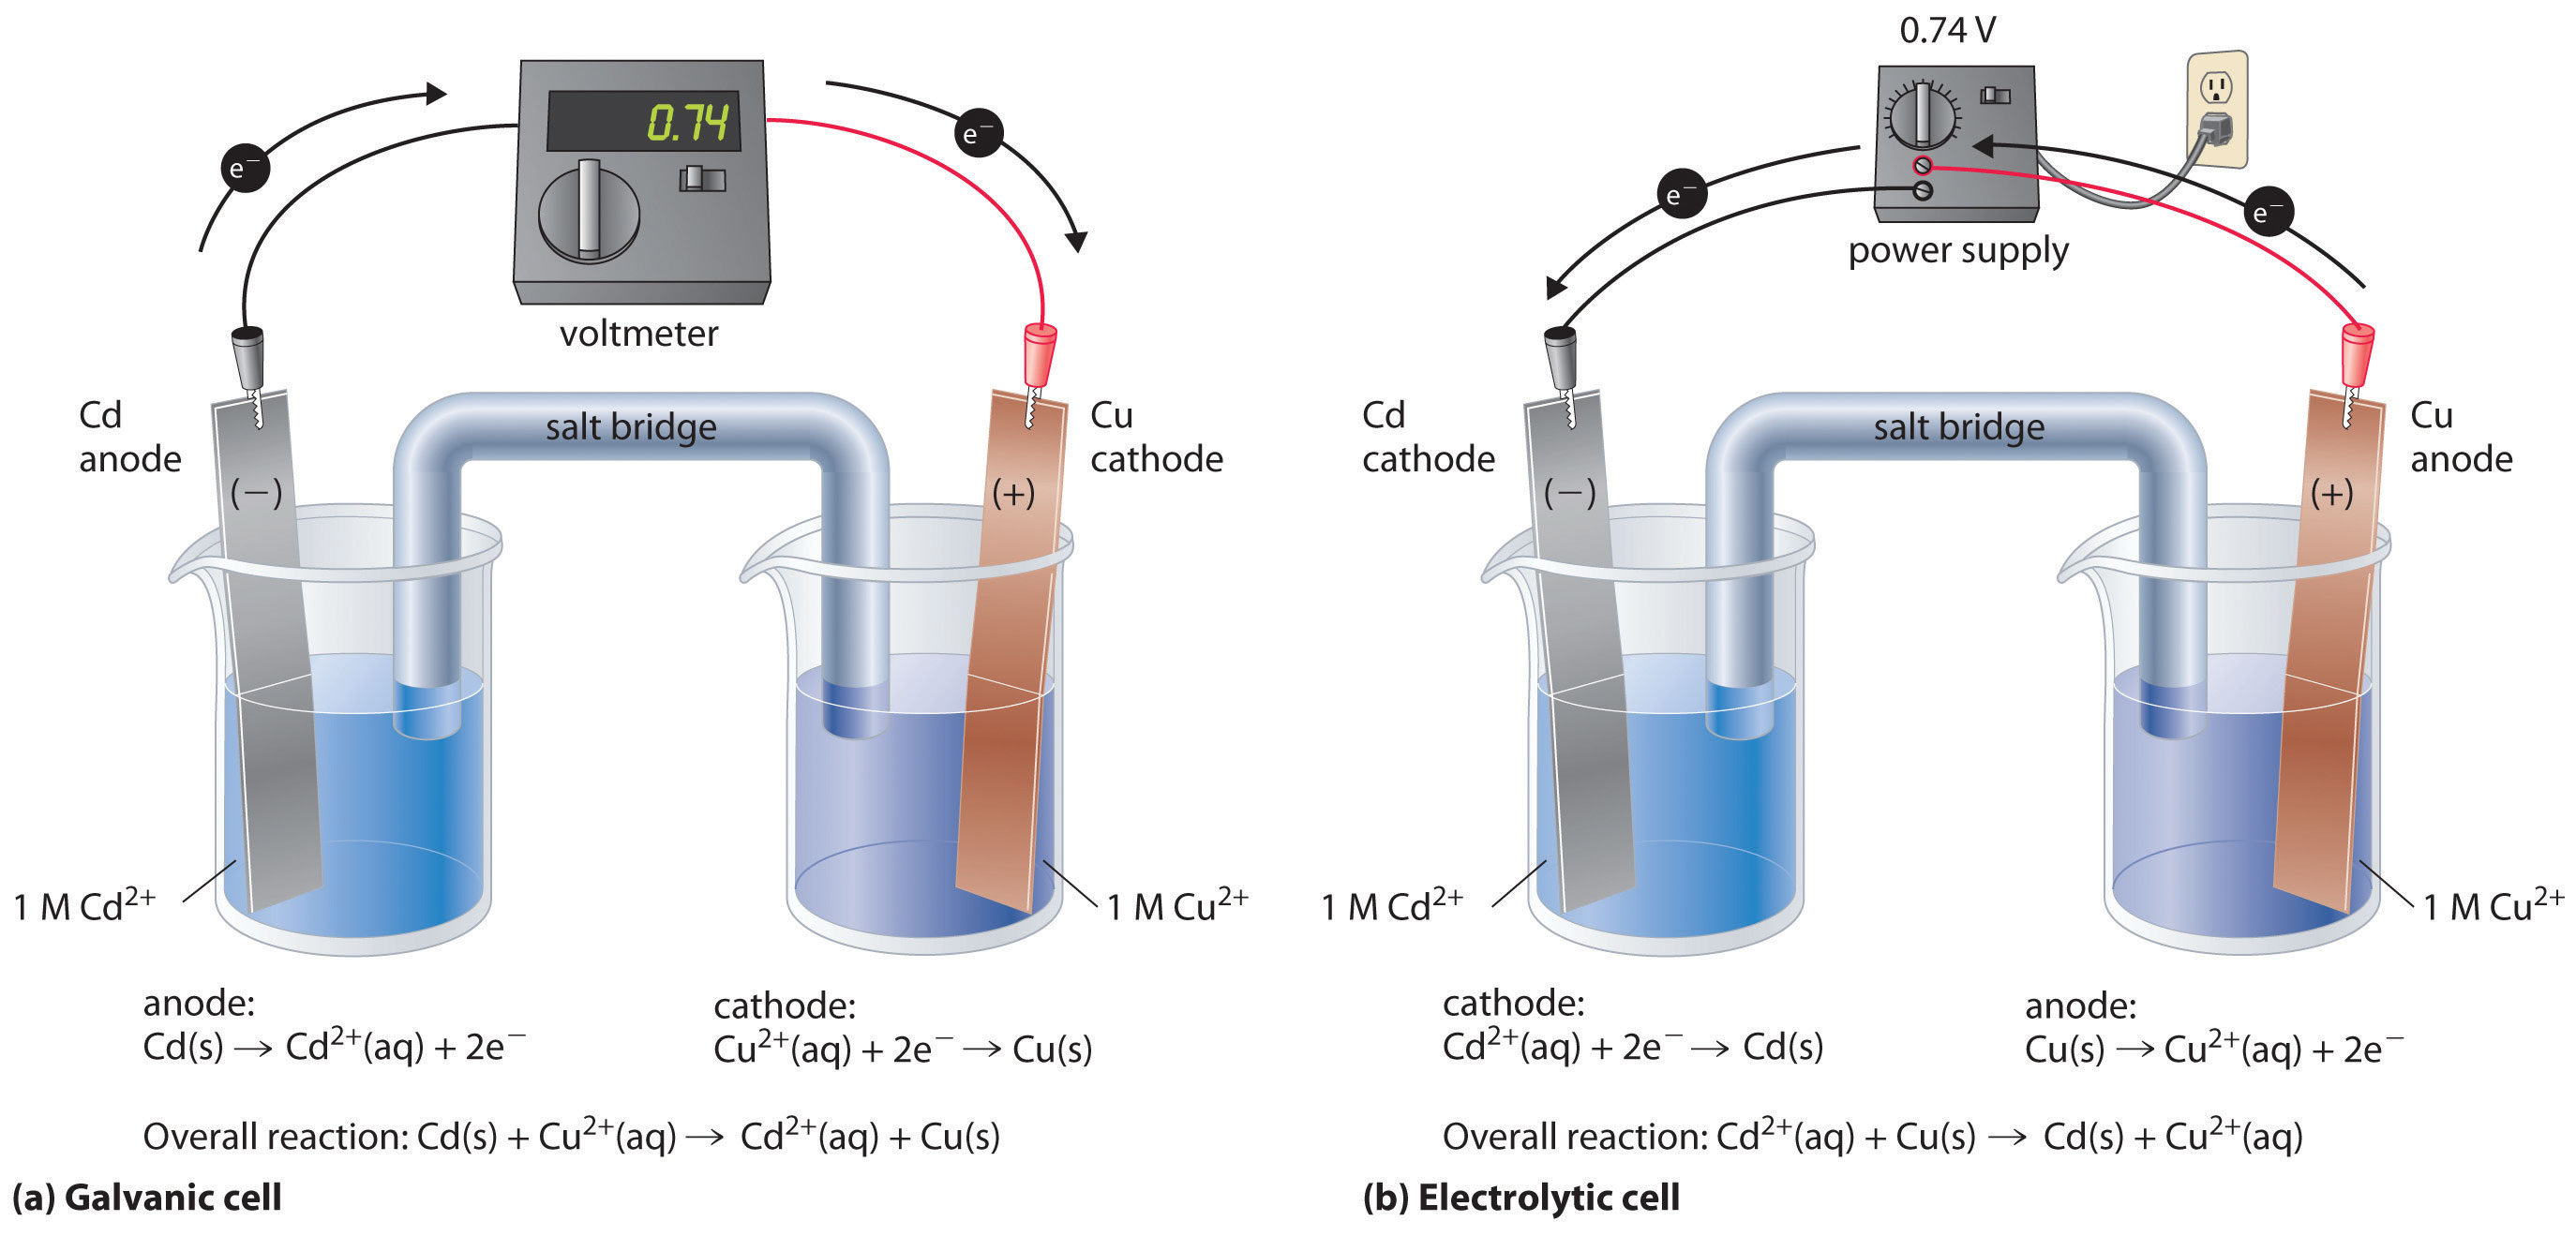 How Can A Galvanic Cell Become An Electrolytic Cell